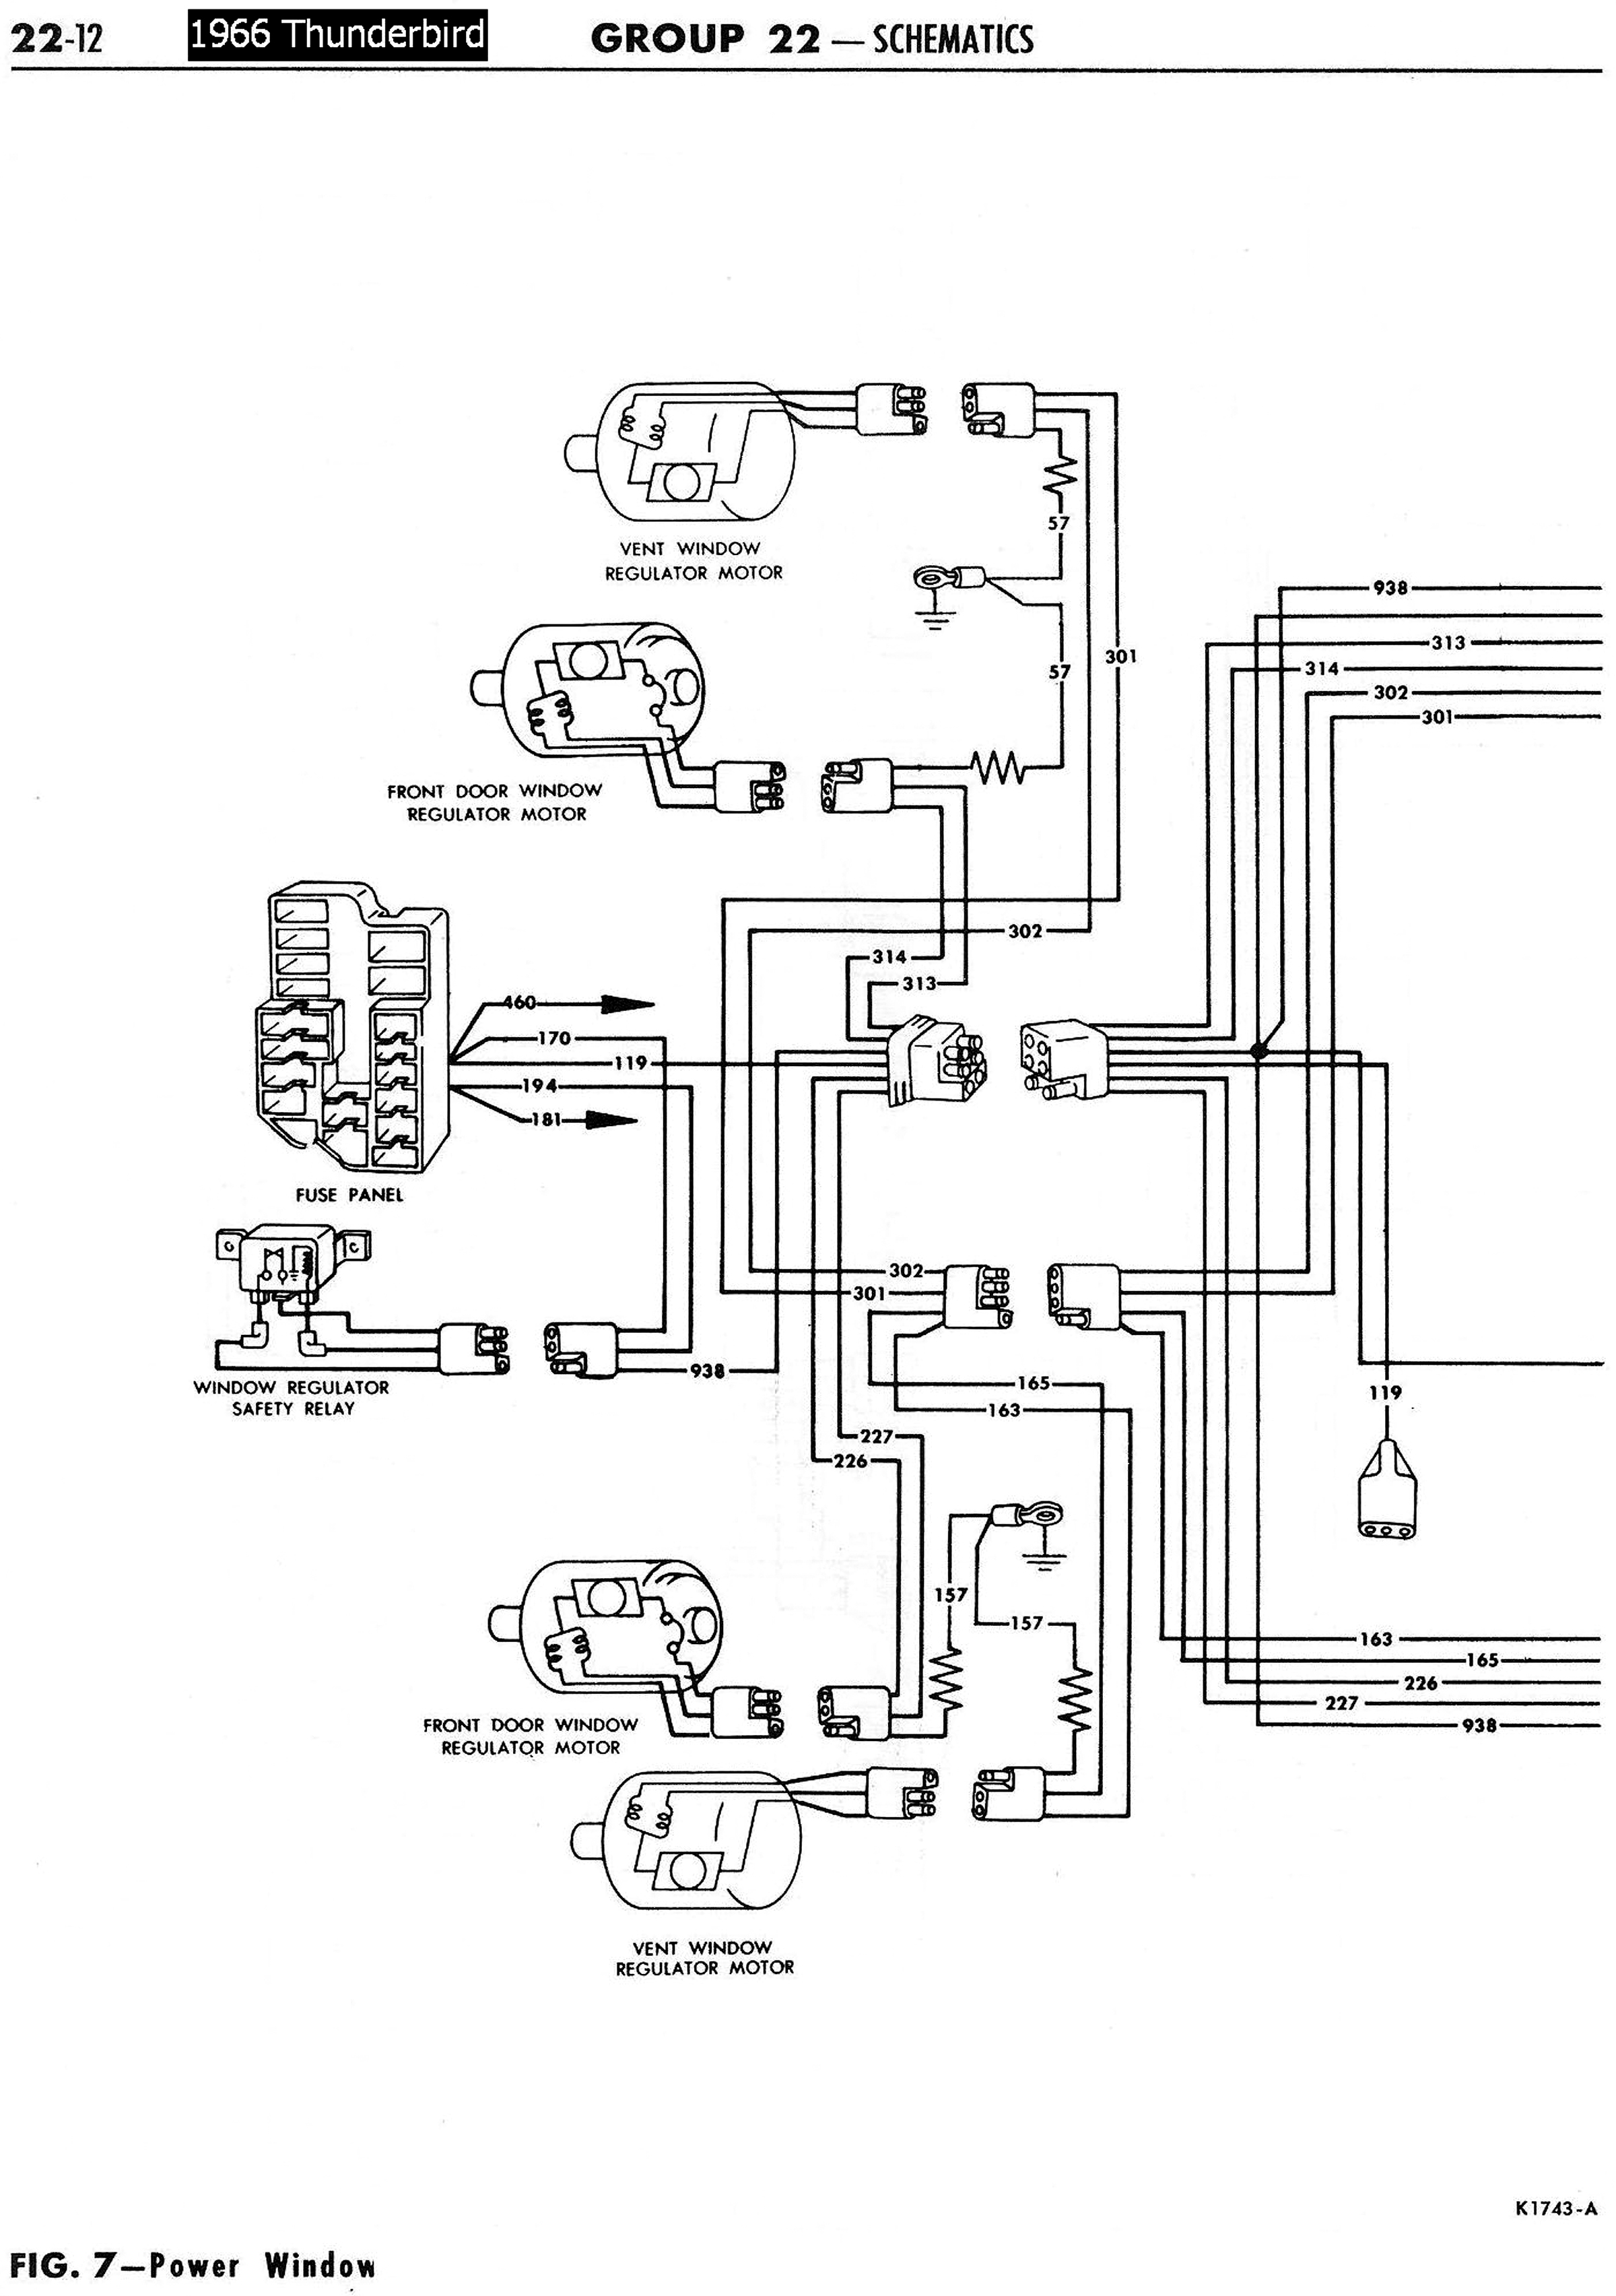 66TbirdPowerWindowsSchematicLeft 1955 electrical wiring schematic suppliment 110 41 5 readingrat net 1964 thunderbird wiring diagram at bayanpartner.co